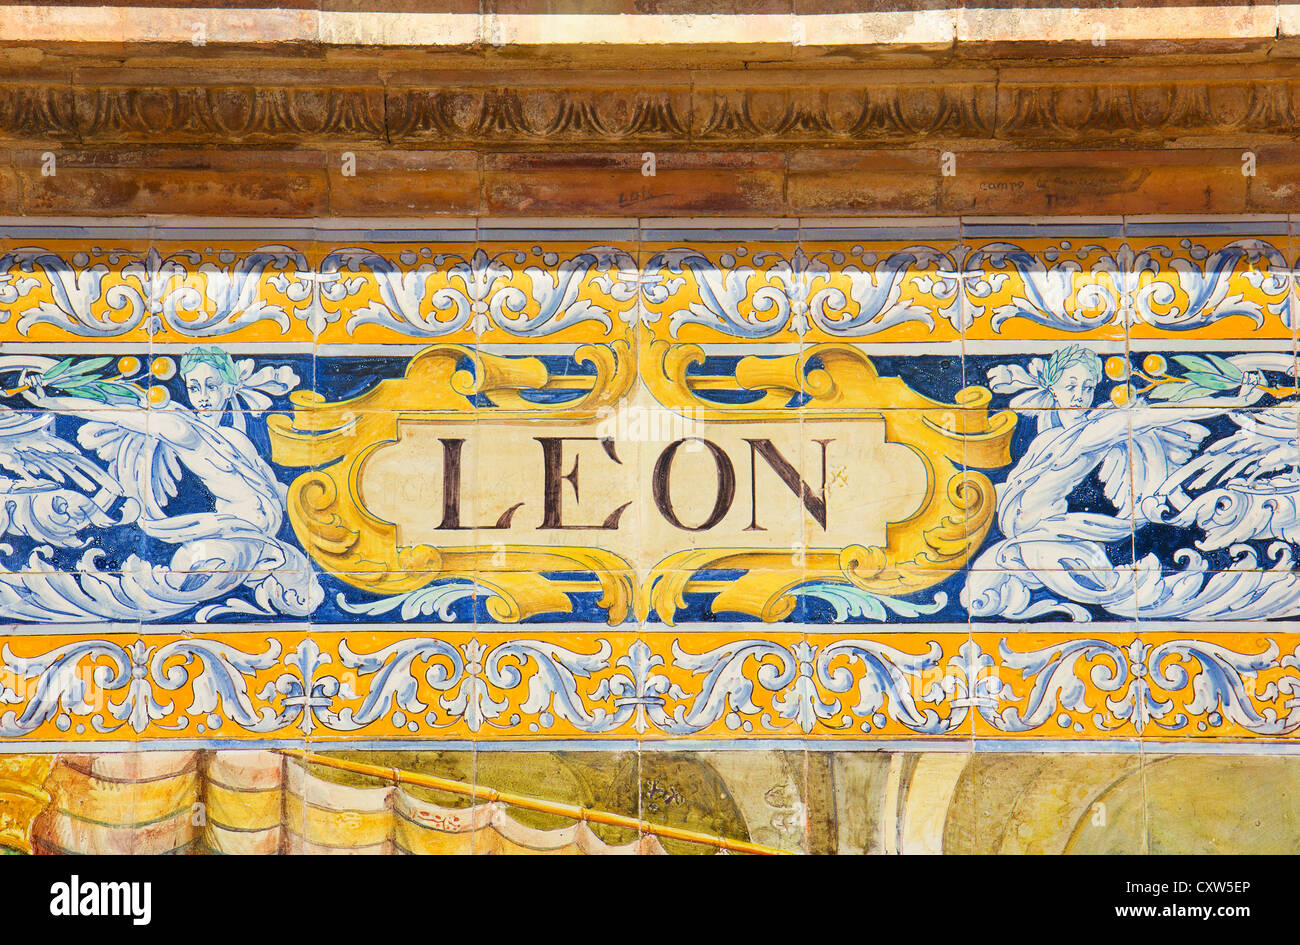 ceramic decoration on mosaic wall, Spain. Leon theme Stock Photo ...